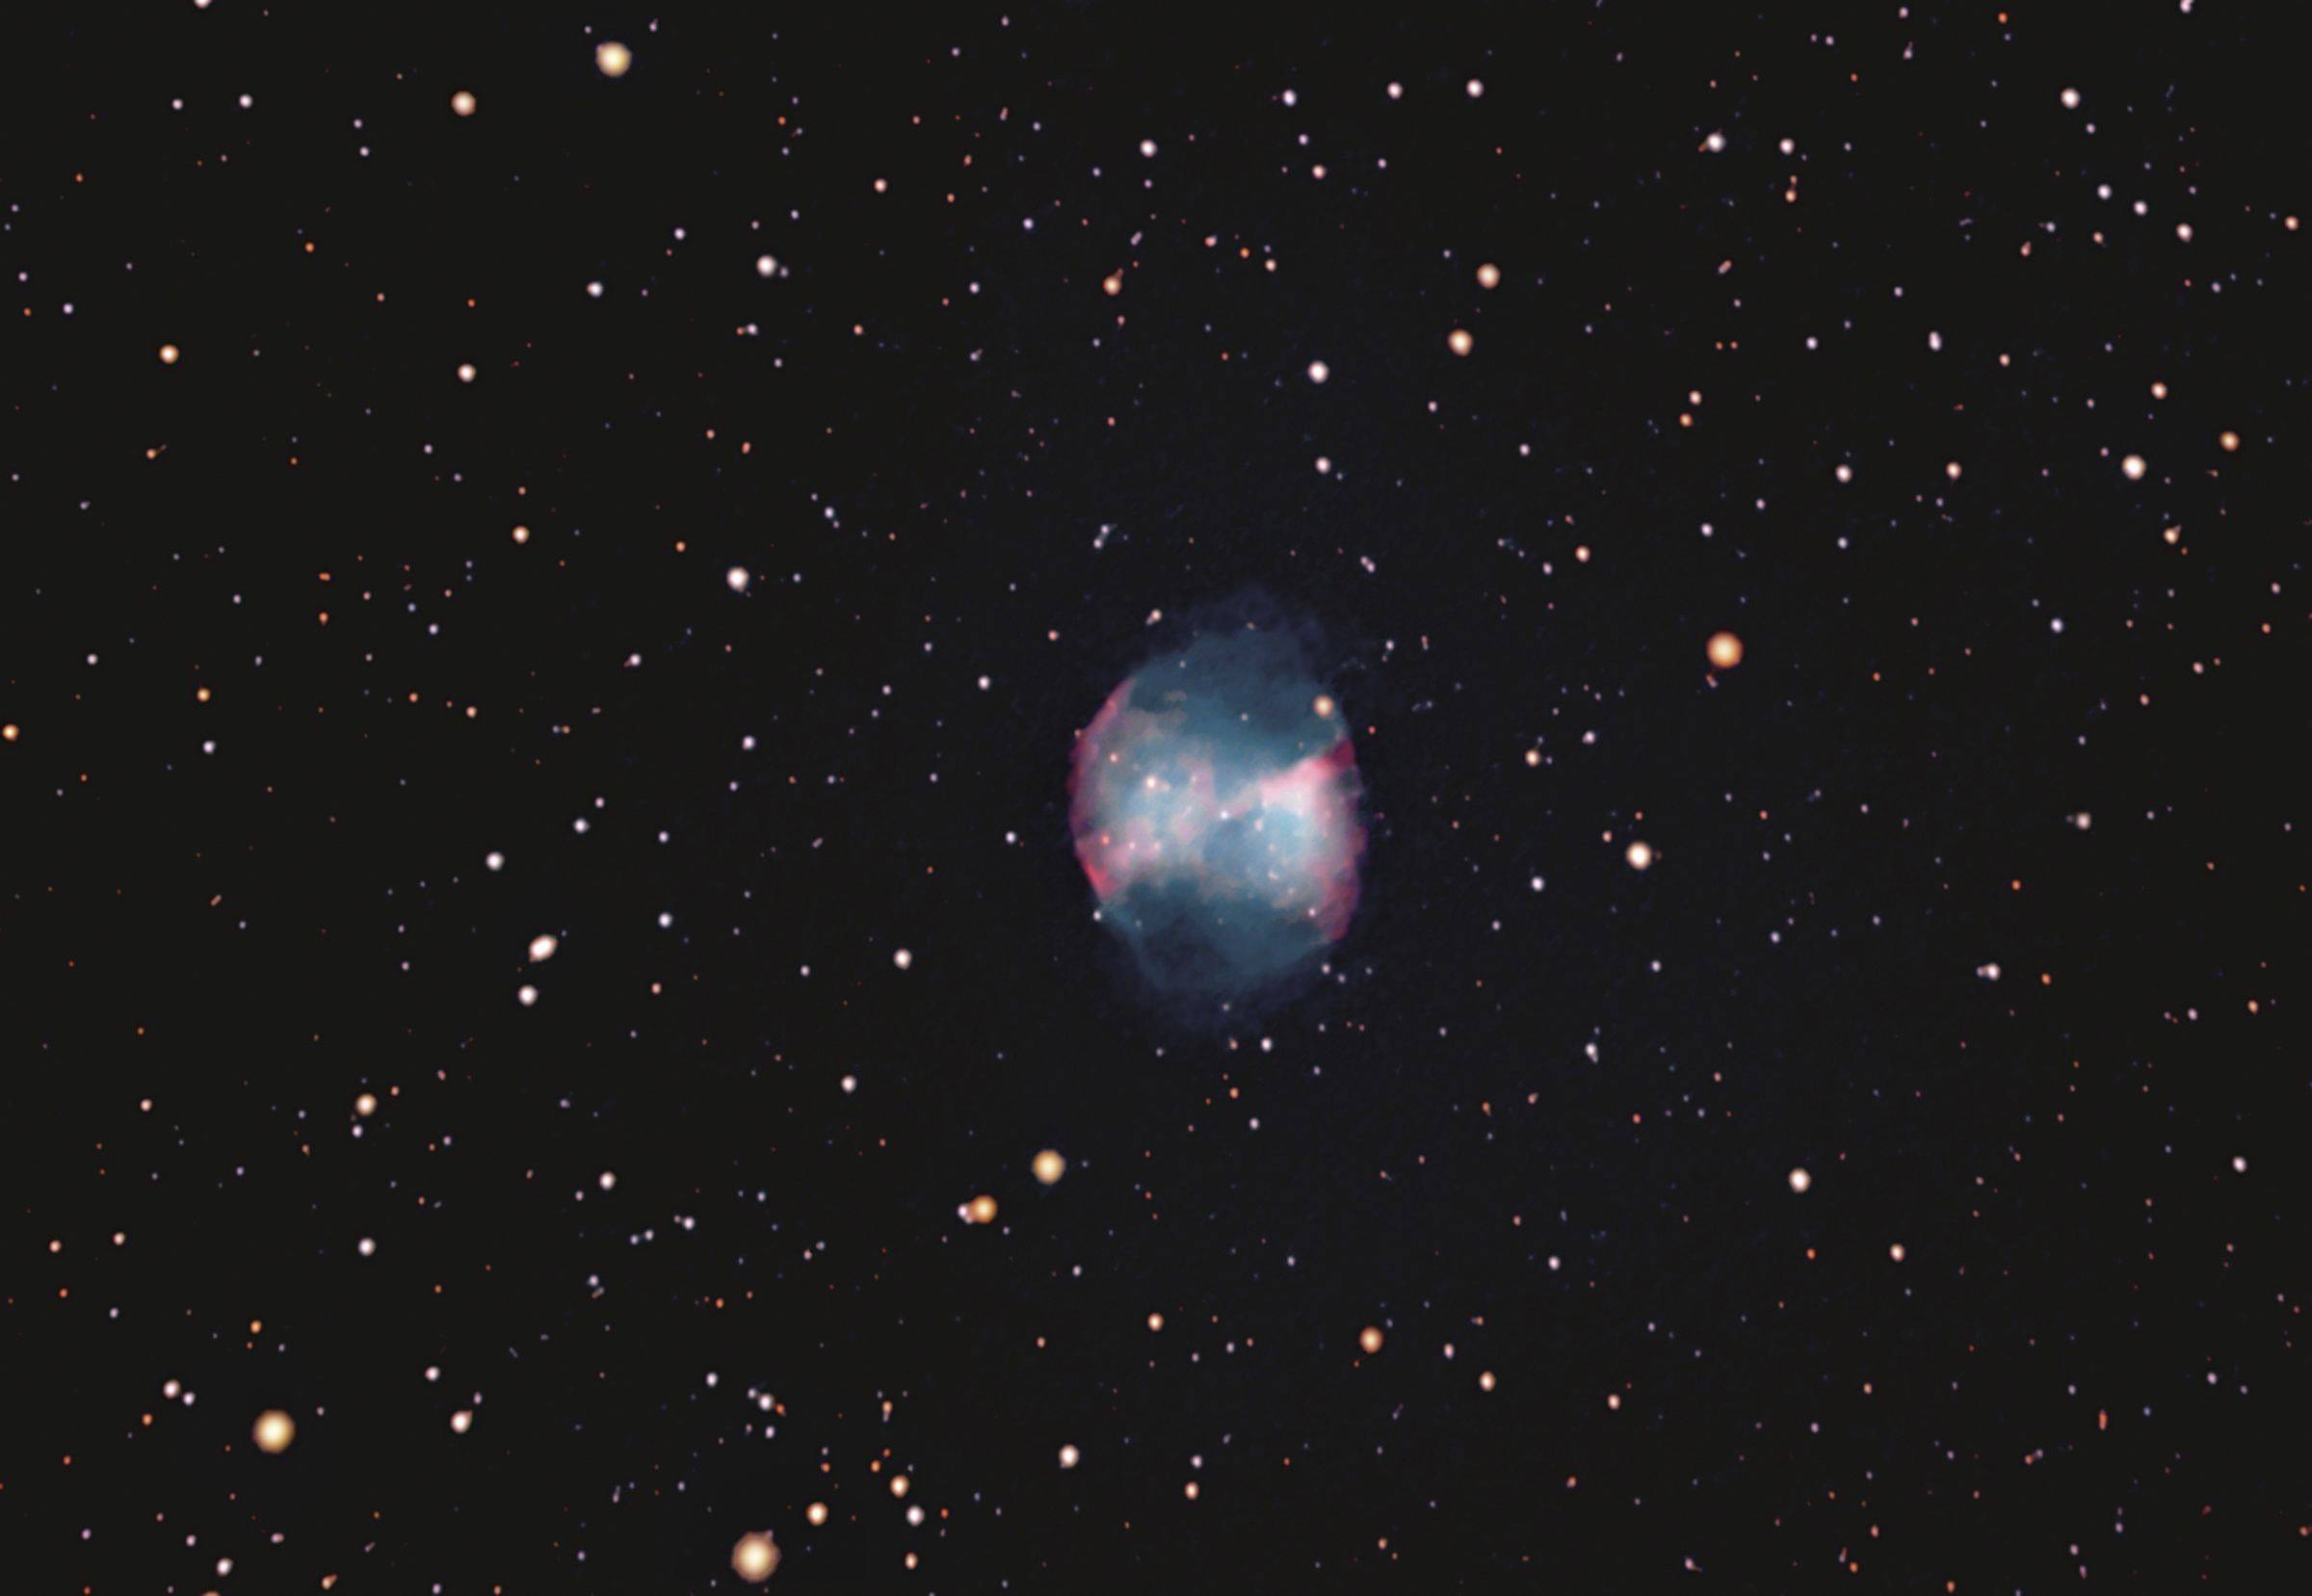 24 The Dumbbell Nebula (Messier 27)